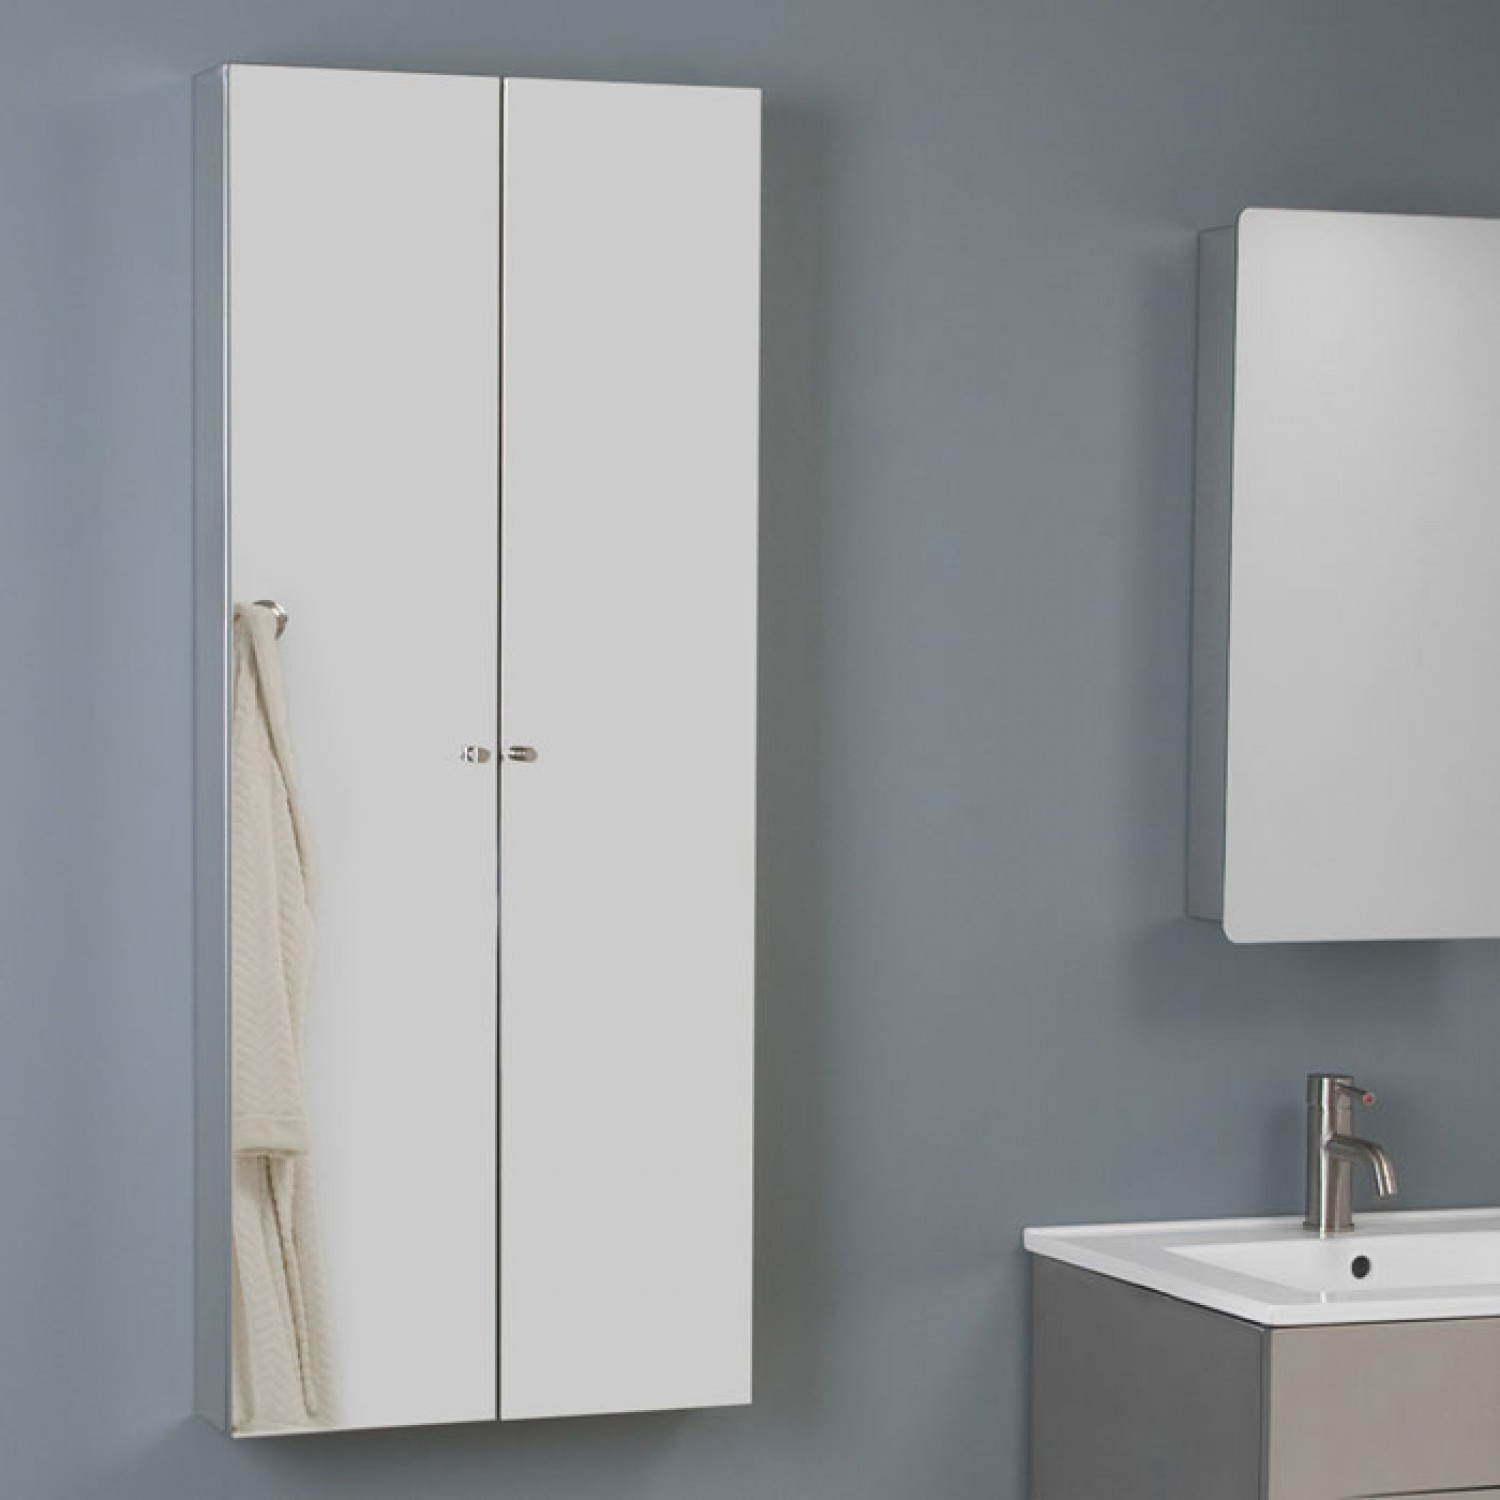 awesome bathroom bertch cabinets in white on blue wall plus medicine cabinet and sink for bathroom decor ideas